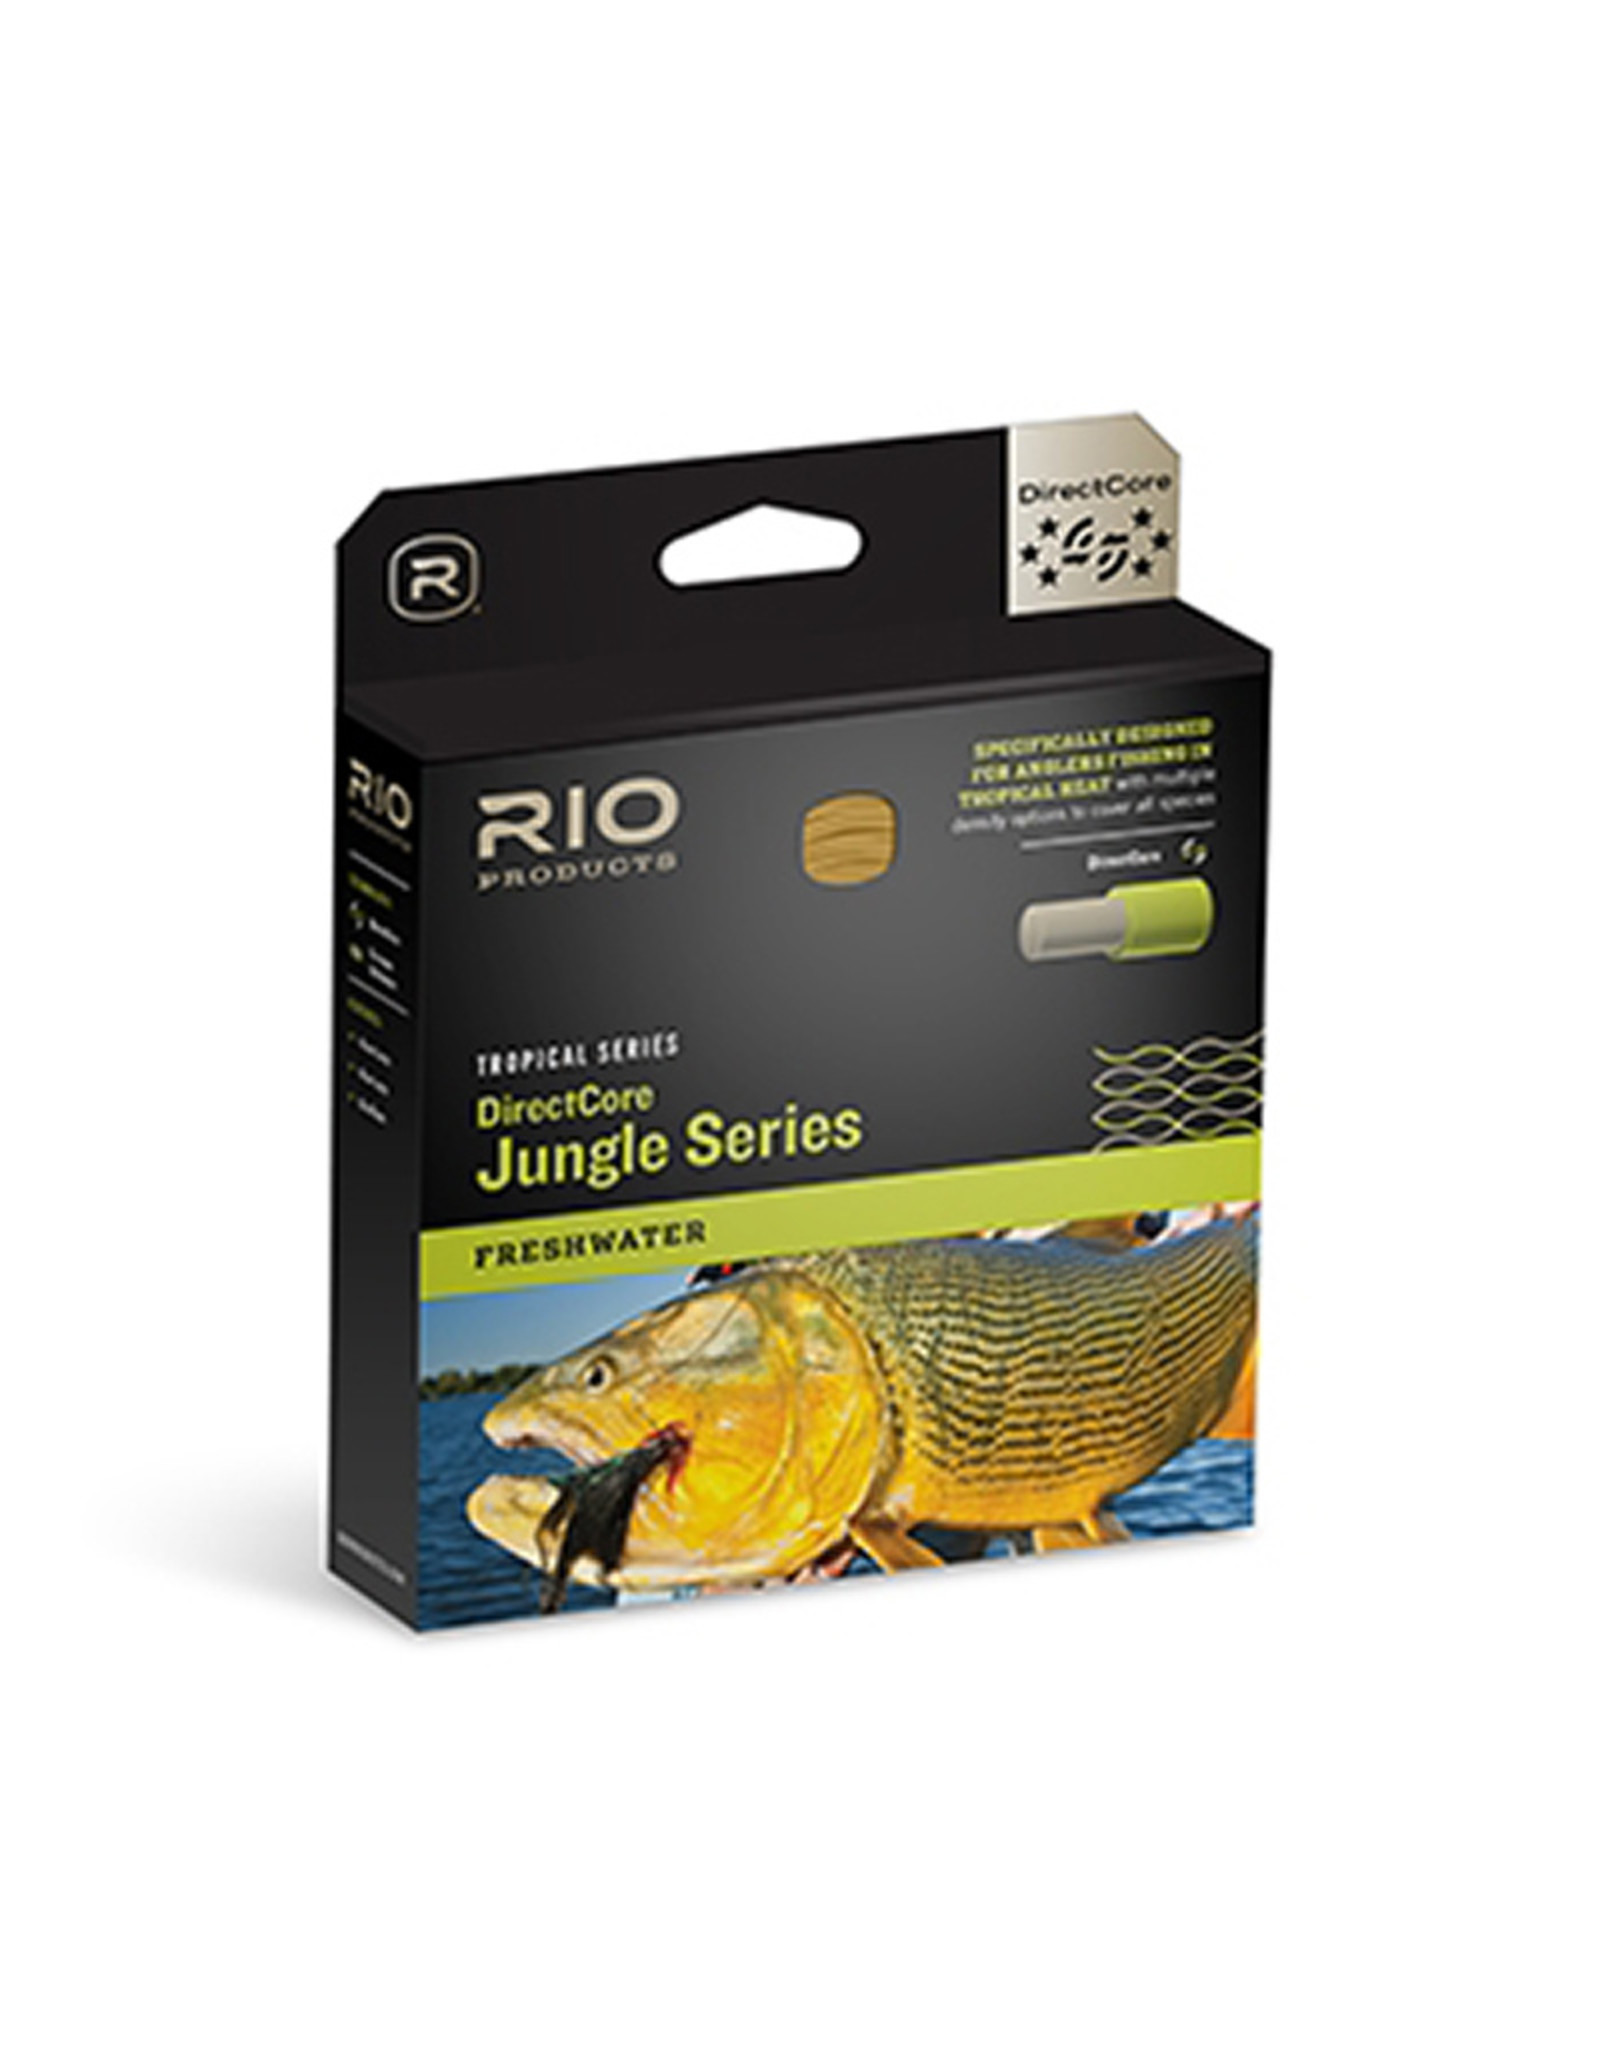 RIO Products DirectCore Jungle Series F